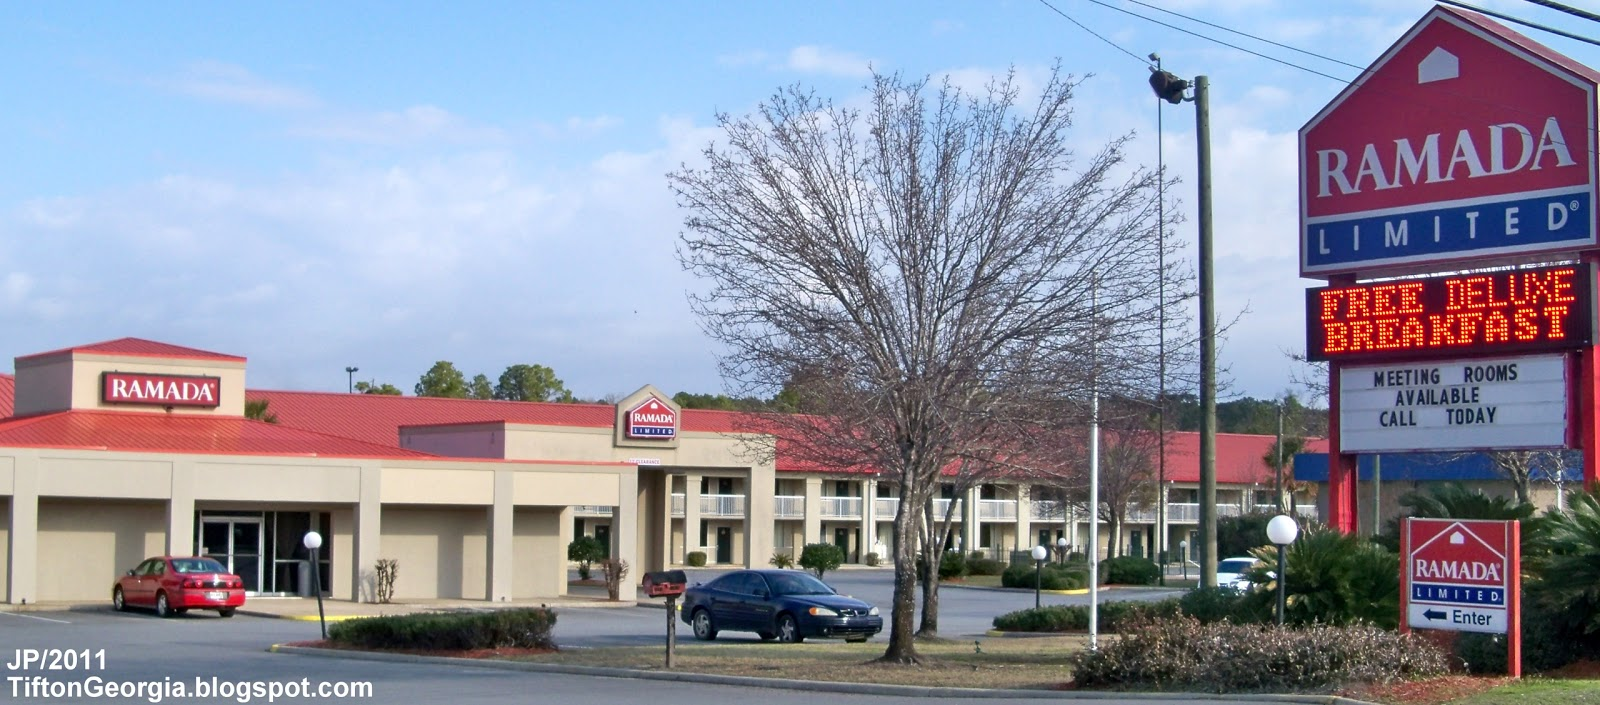 Ramada Limited Hotel Tifton Georgia Us Highway 82 W Inn Lodging Ga